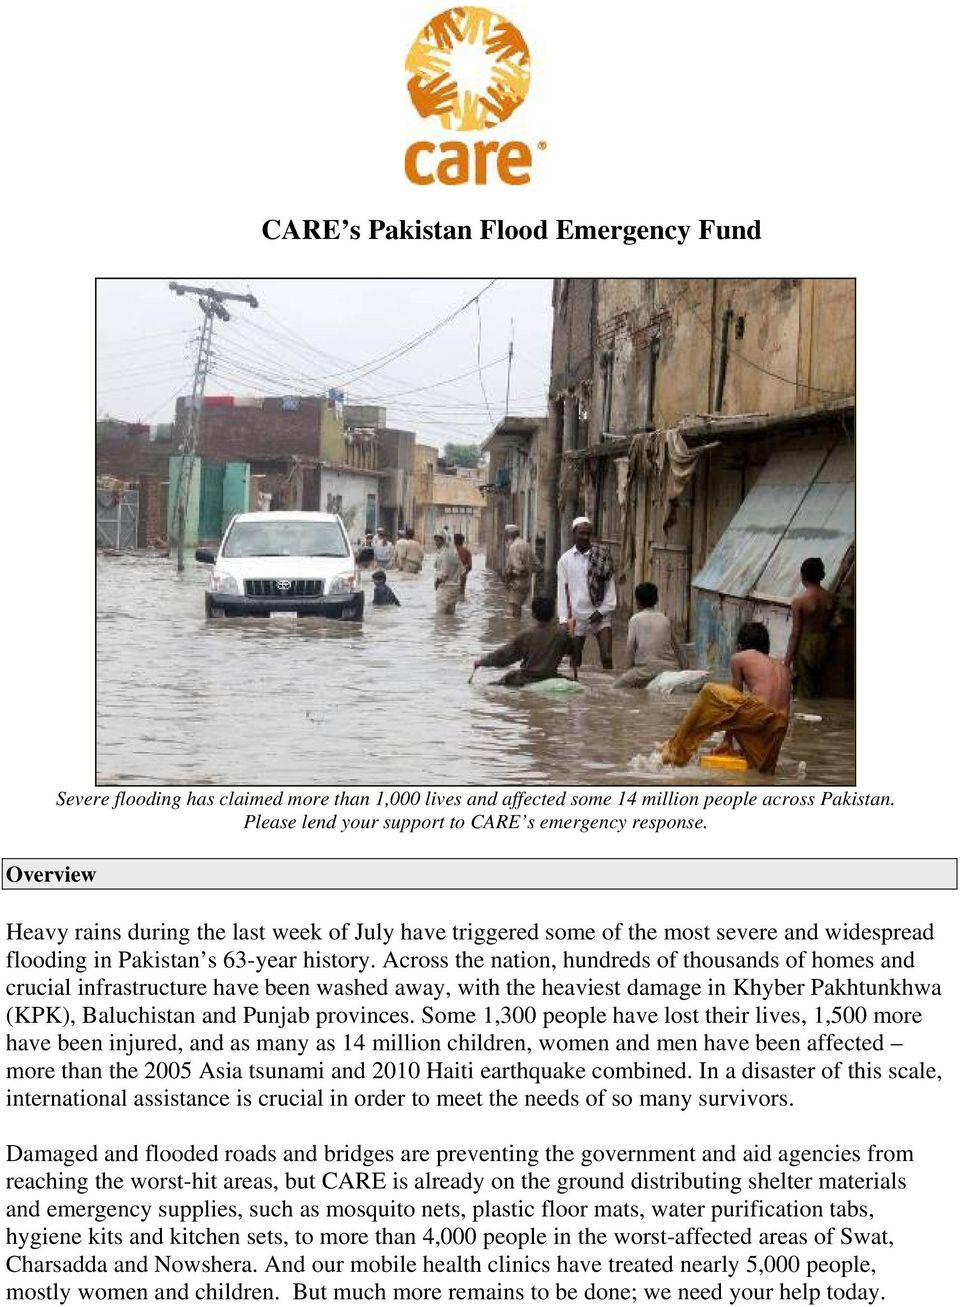 Across the nation, hundreds of thousands of homes and crucial infrastructure have been washed away, with the heaviest damage in Khyber Pakhtunkhwa (KPK), Baluchistan and Punjab provinces.